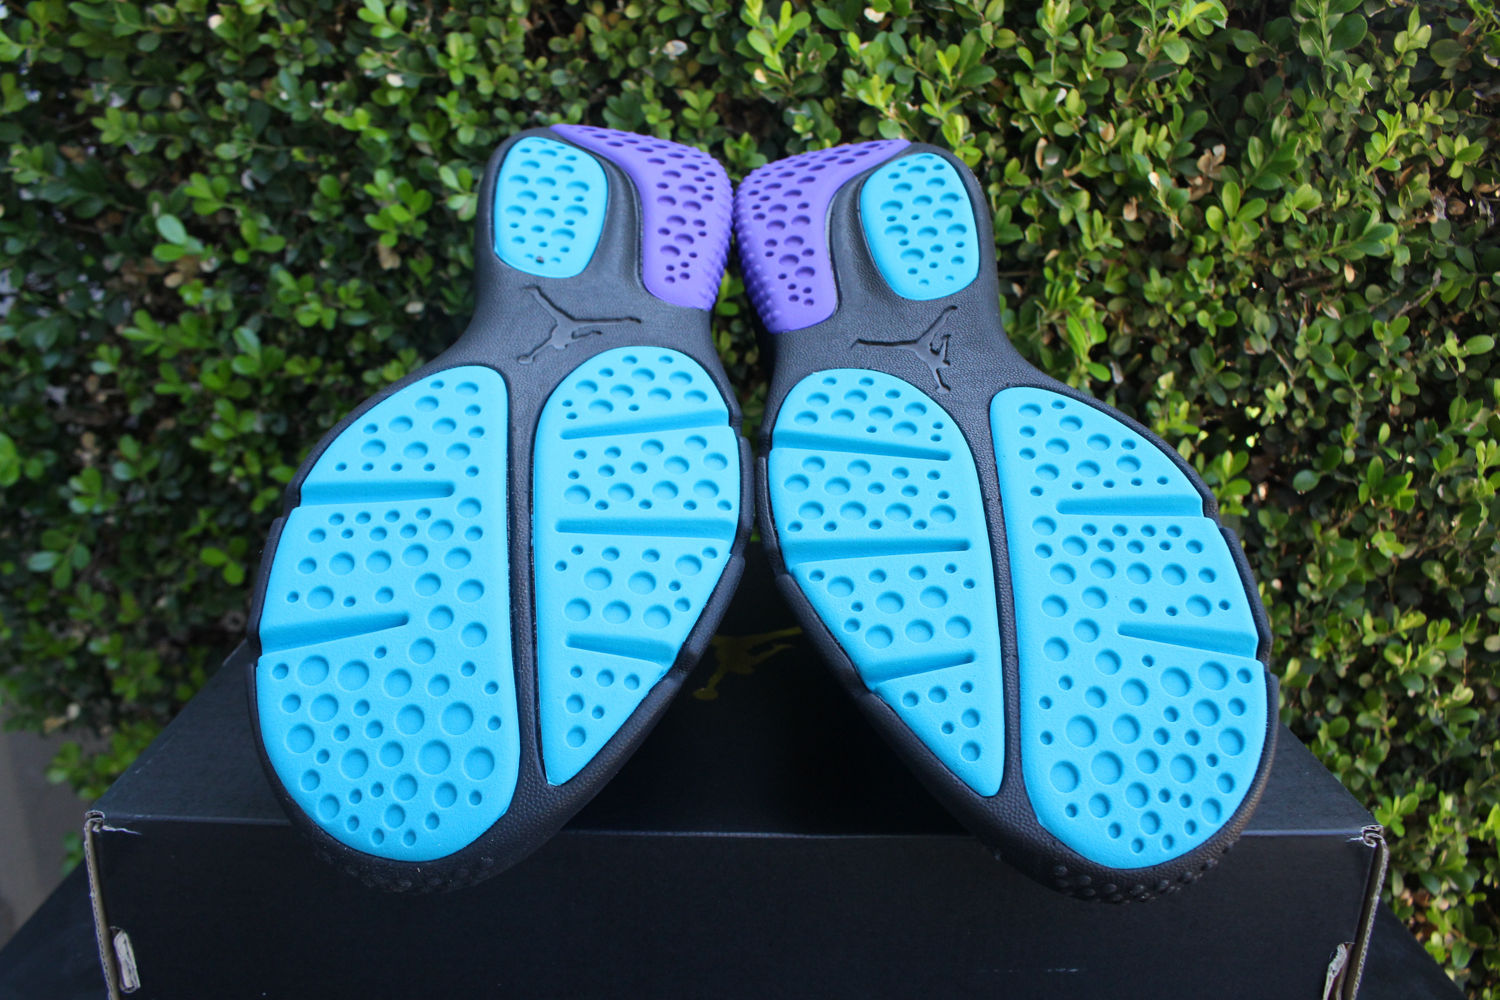 05140105f56276 Jordan - NIKE AIR JORDAN TRAINER ESSENTIAL SZ 8.5 AQUA BLACK WHITE PURPLE  888122 018 - Walmart.com